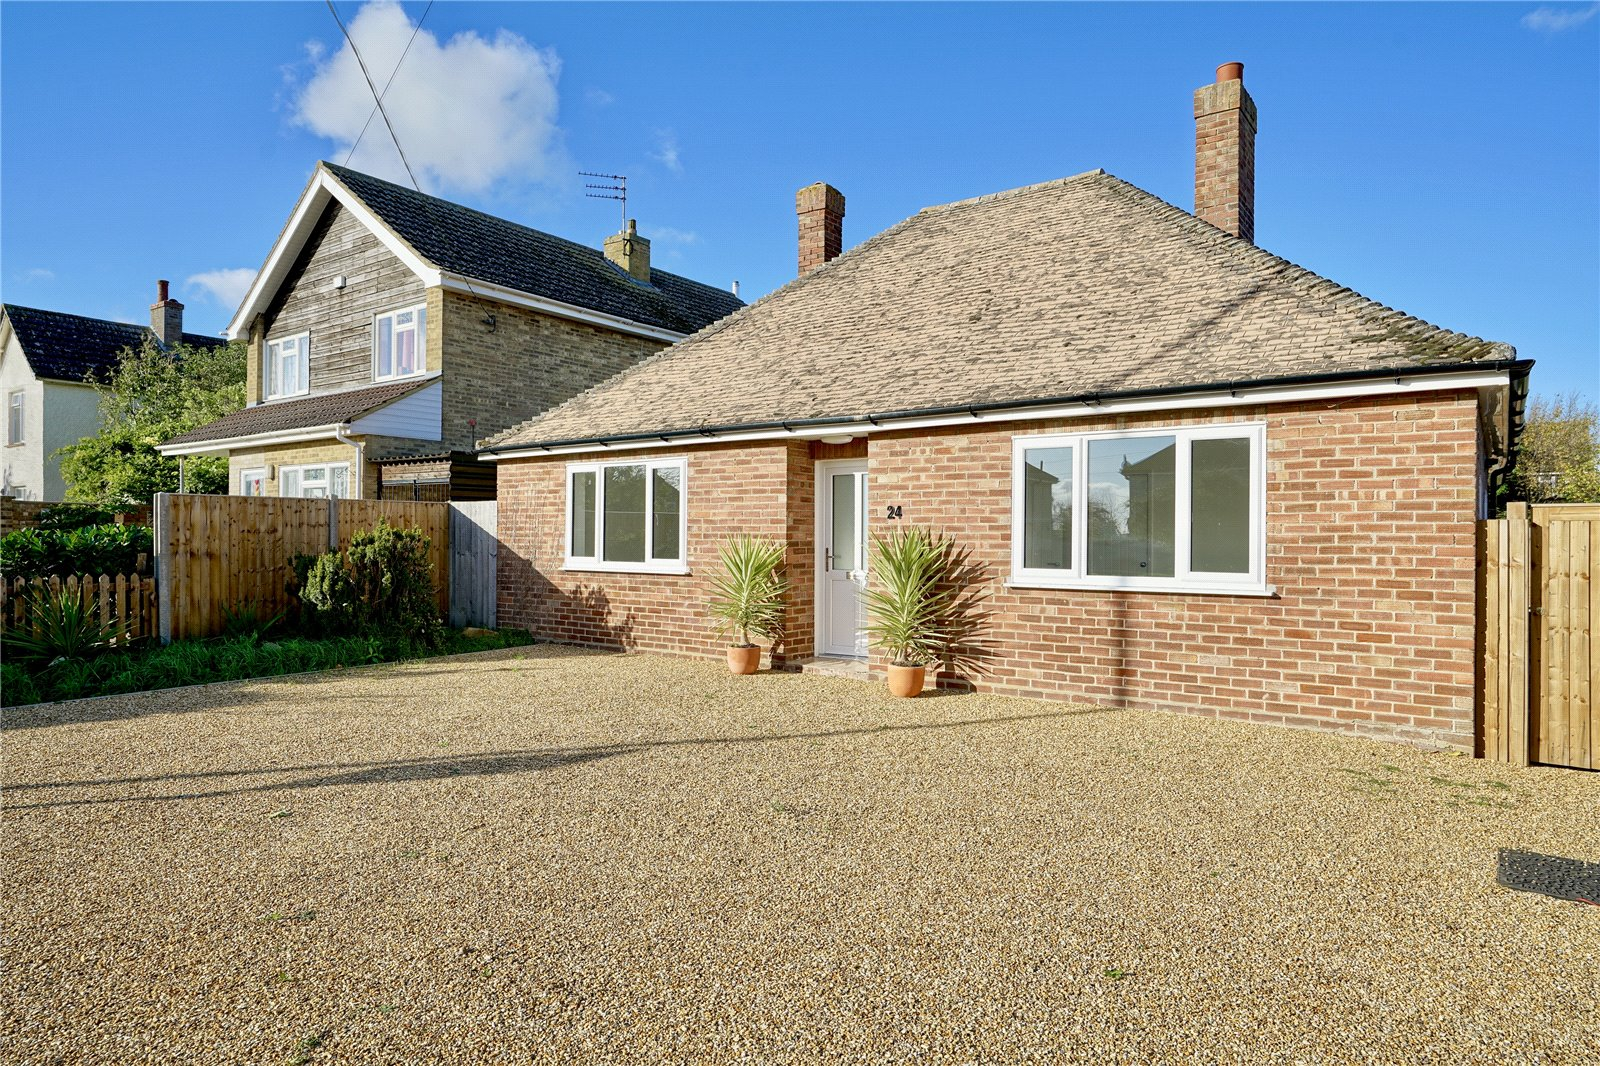 2 bed bungalow for sale in Bluntisham, PE28 3LN, PE28